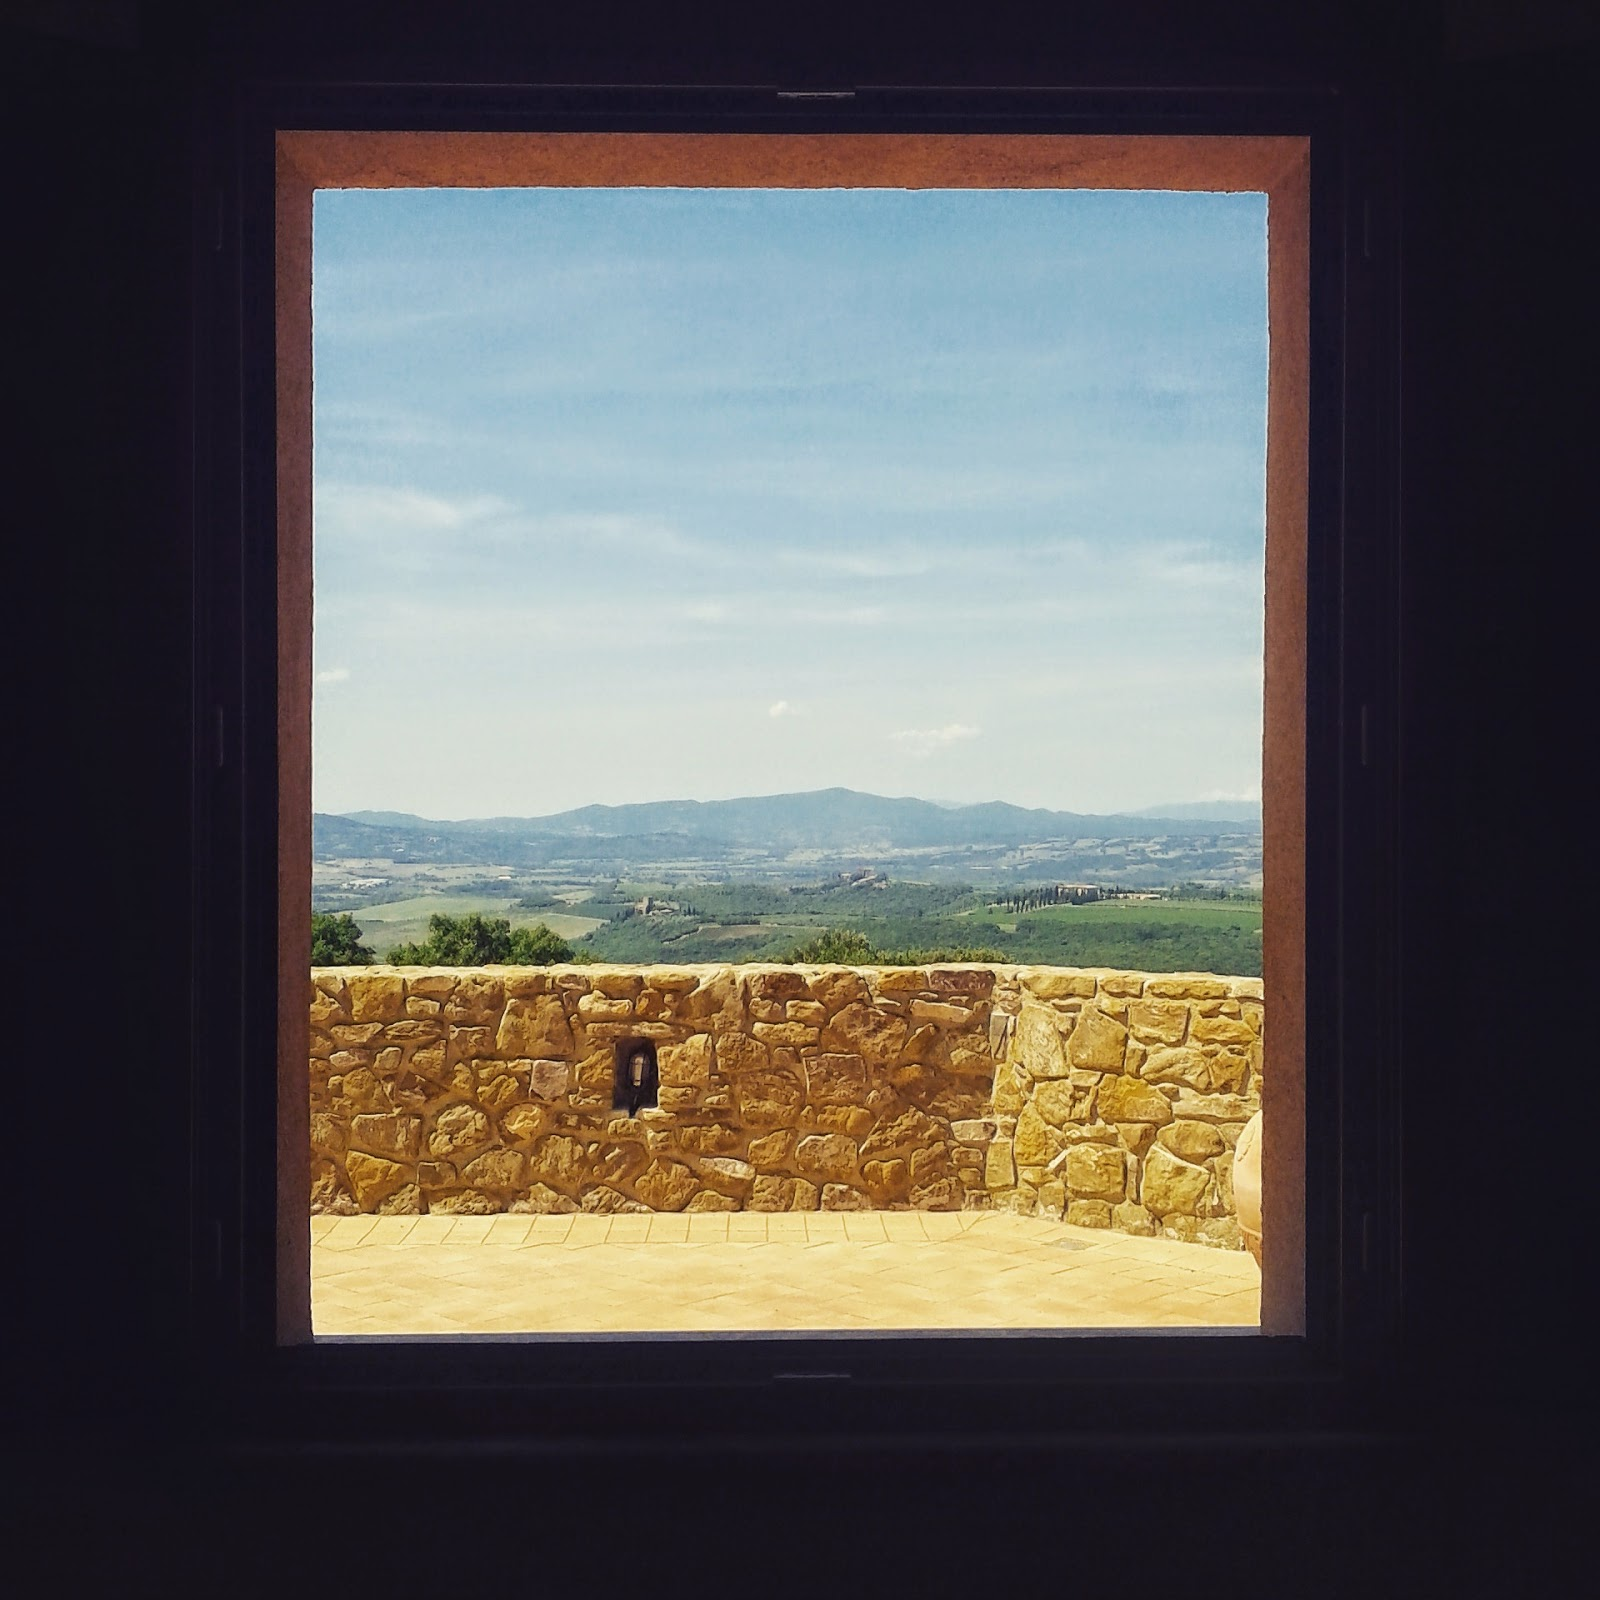 The Tuscan landscaped seen through the window of a winery